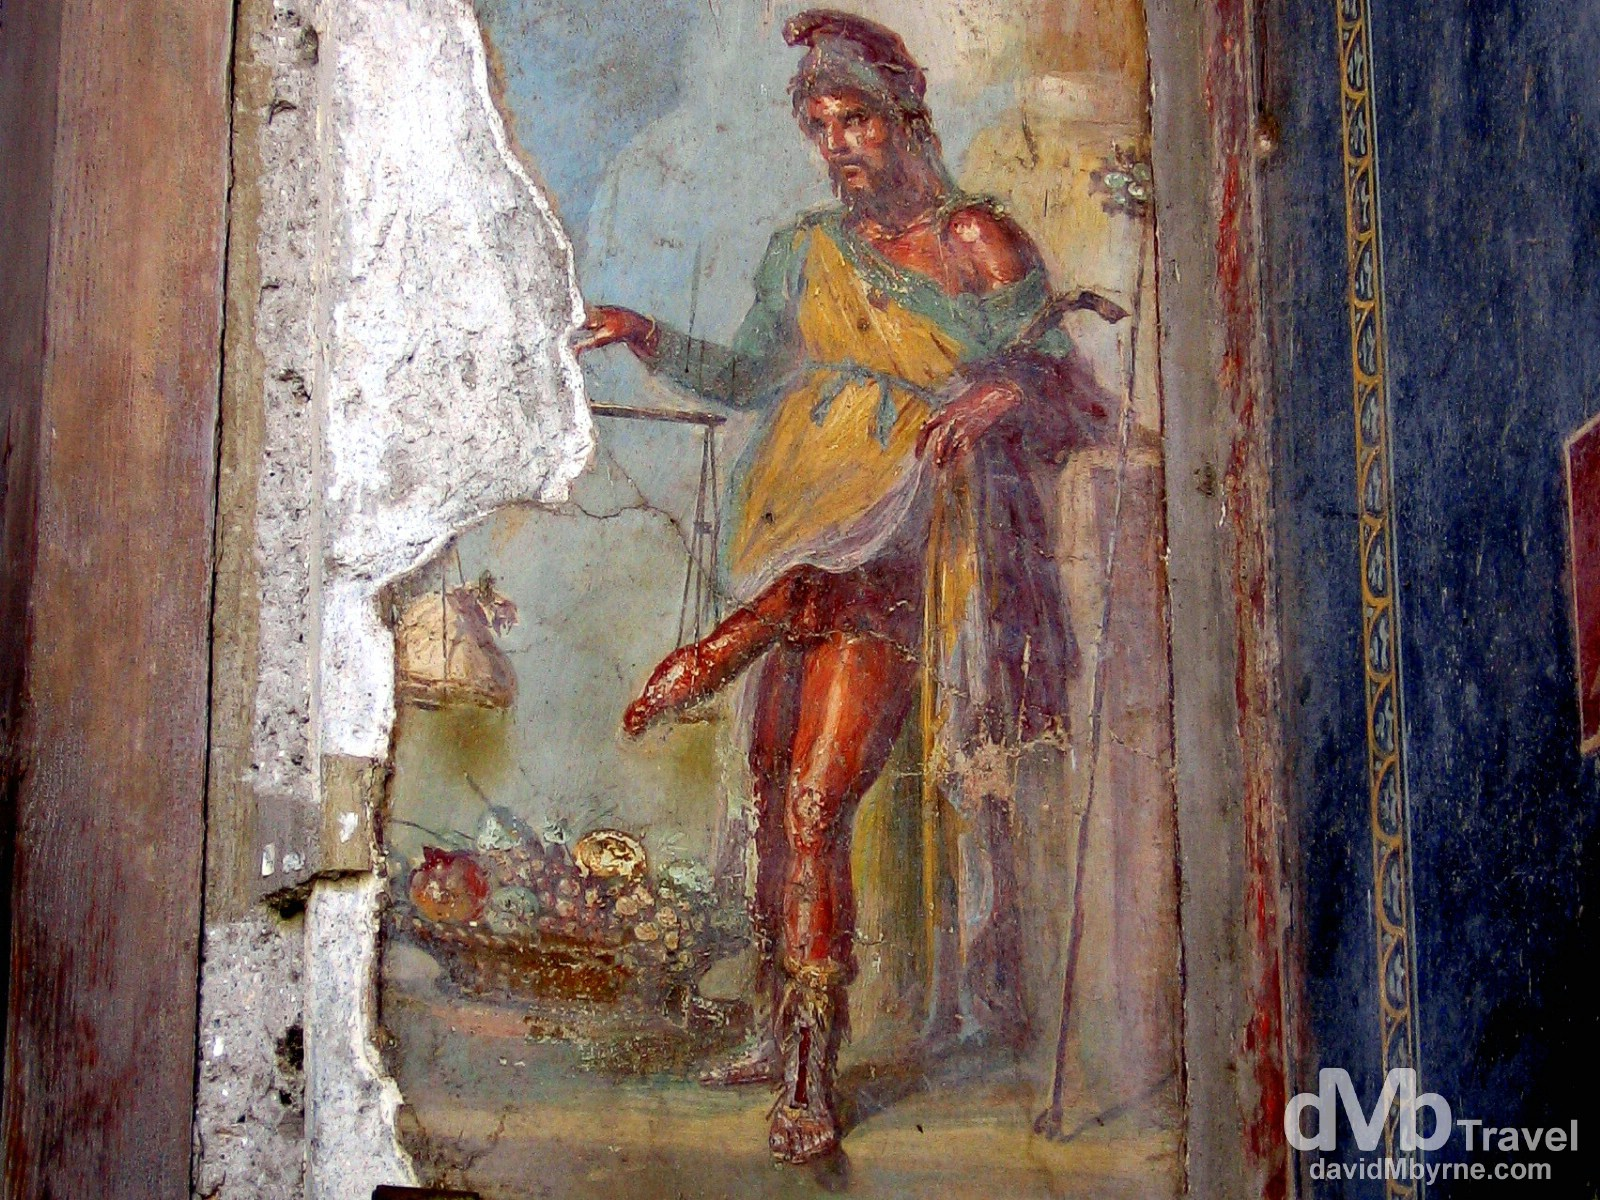 An erotic mural on display in the Roman ruins of Pompeii, Campania, Italy. September 5th, 2007.